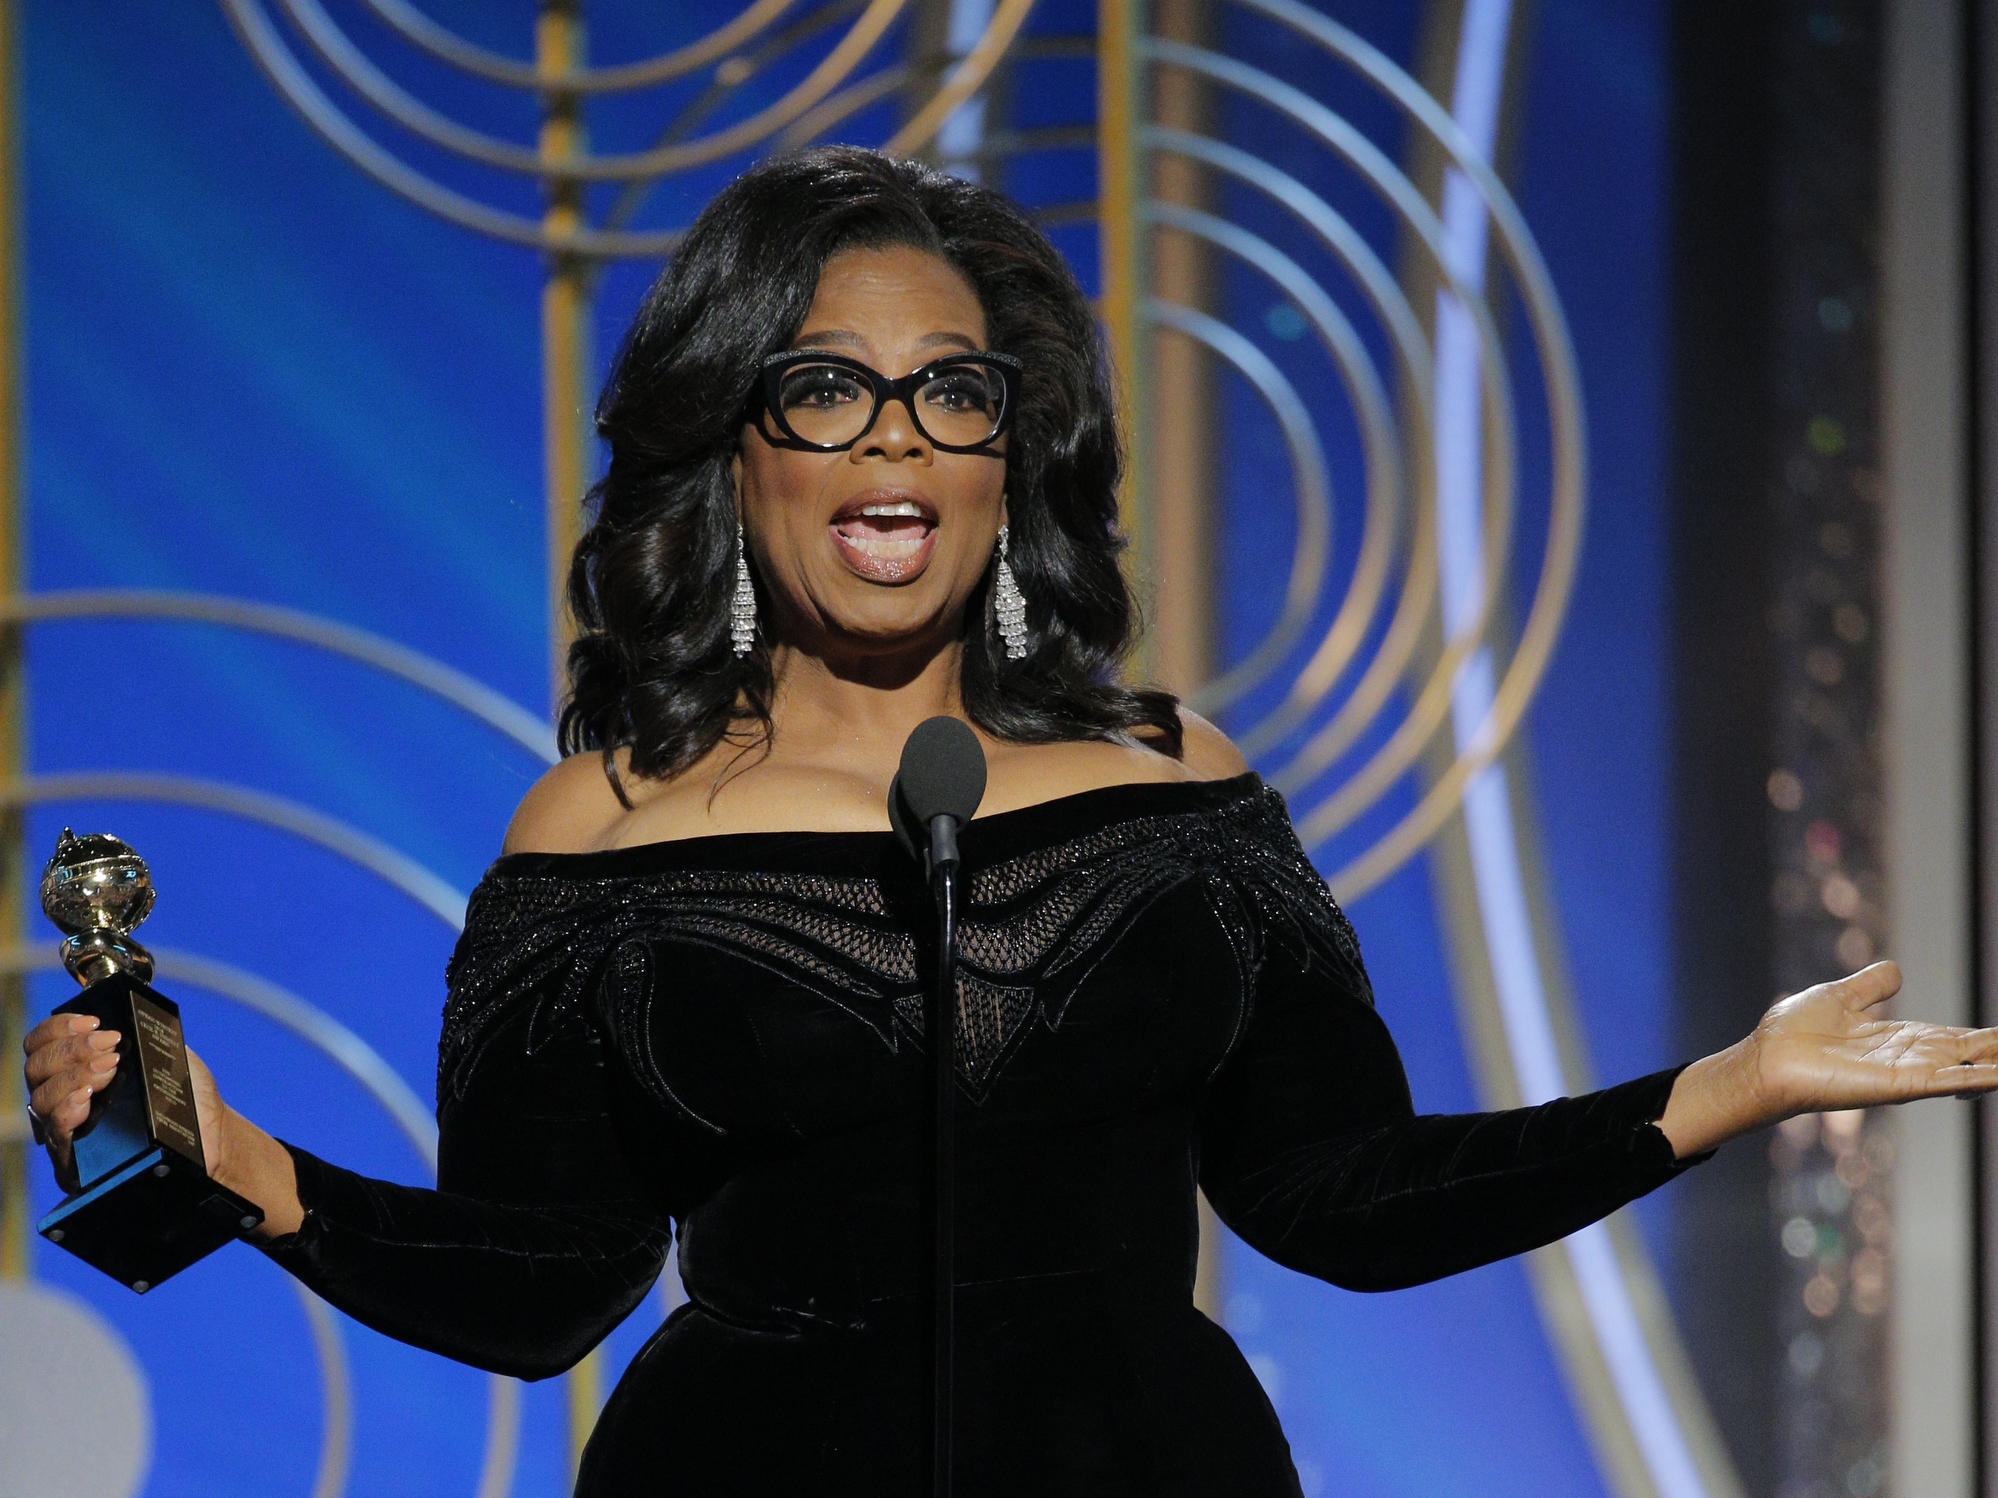 Trump says he would beat Winfrey in presidential contest